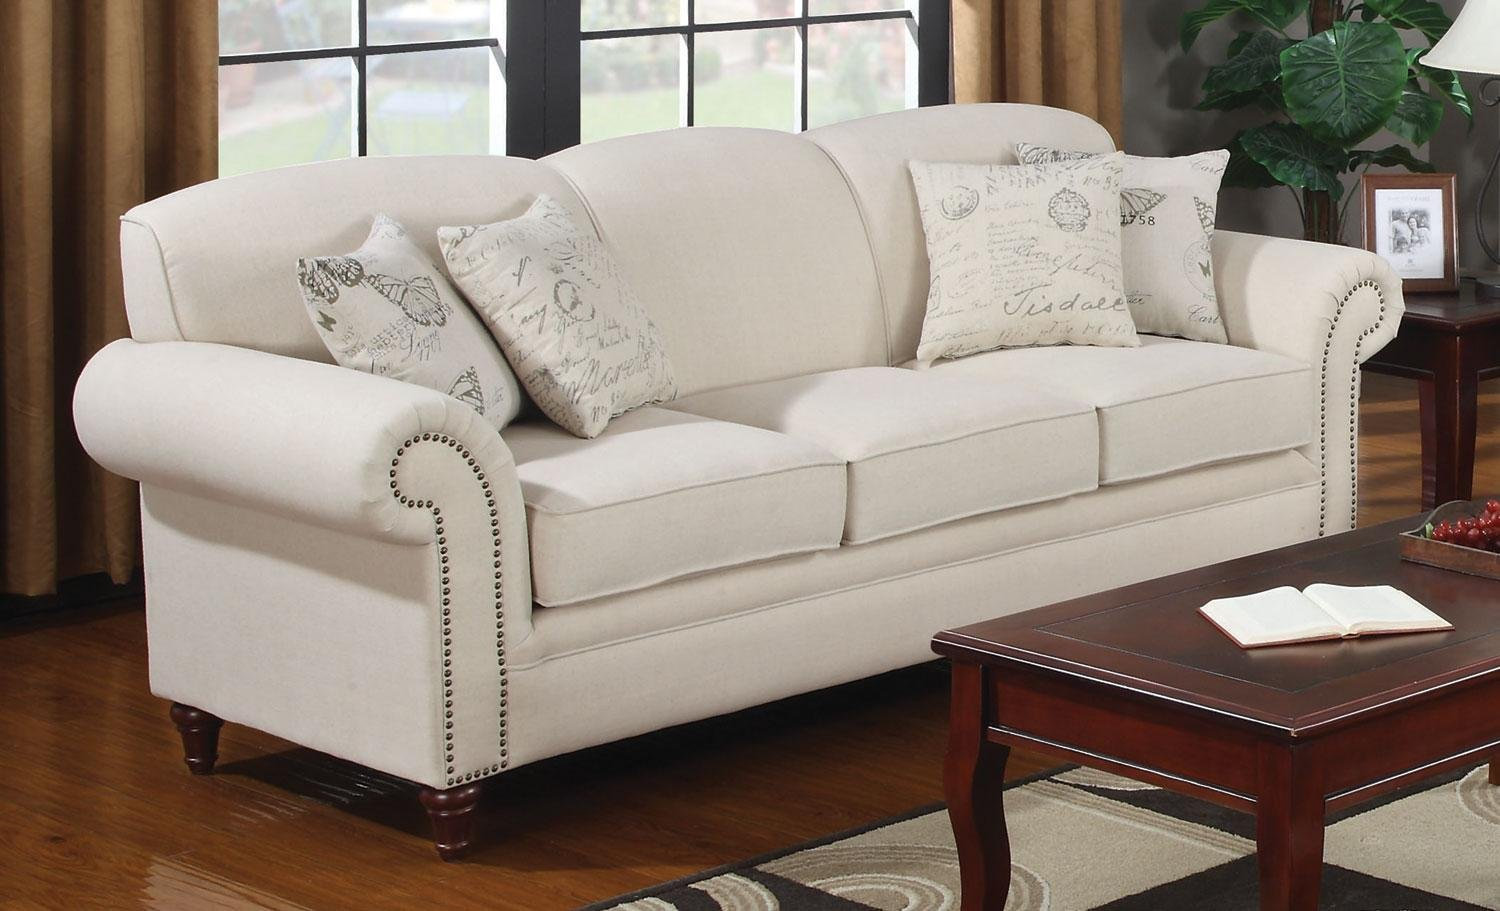 Amazon.com | Coaster Coaster Norah Sofa U0026 Loveseat Set: Linen Sofa: Coasters